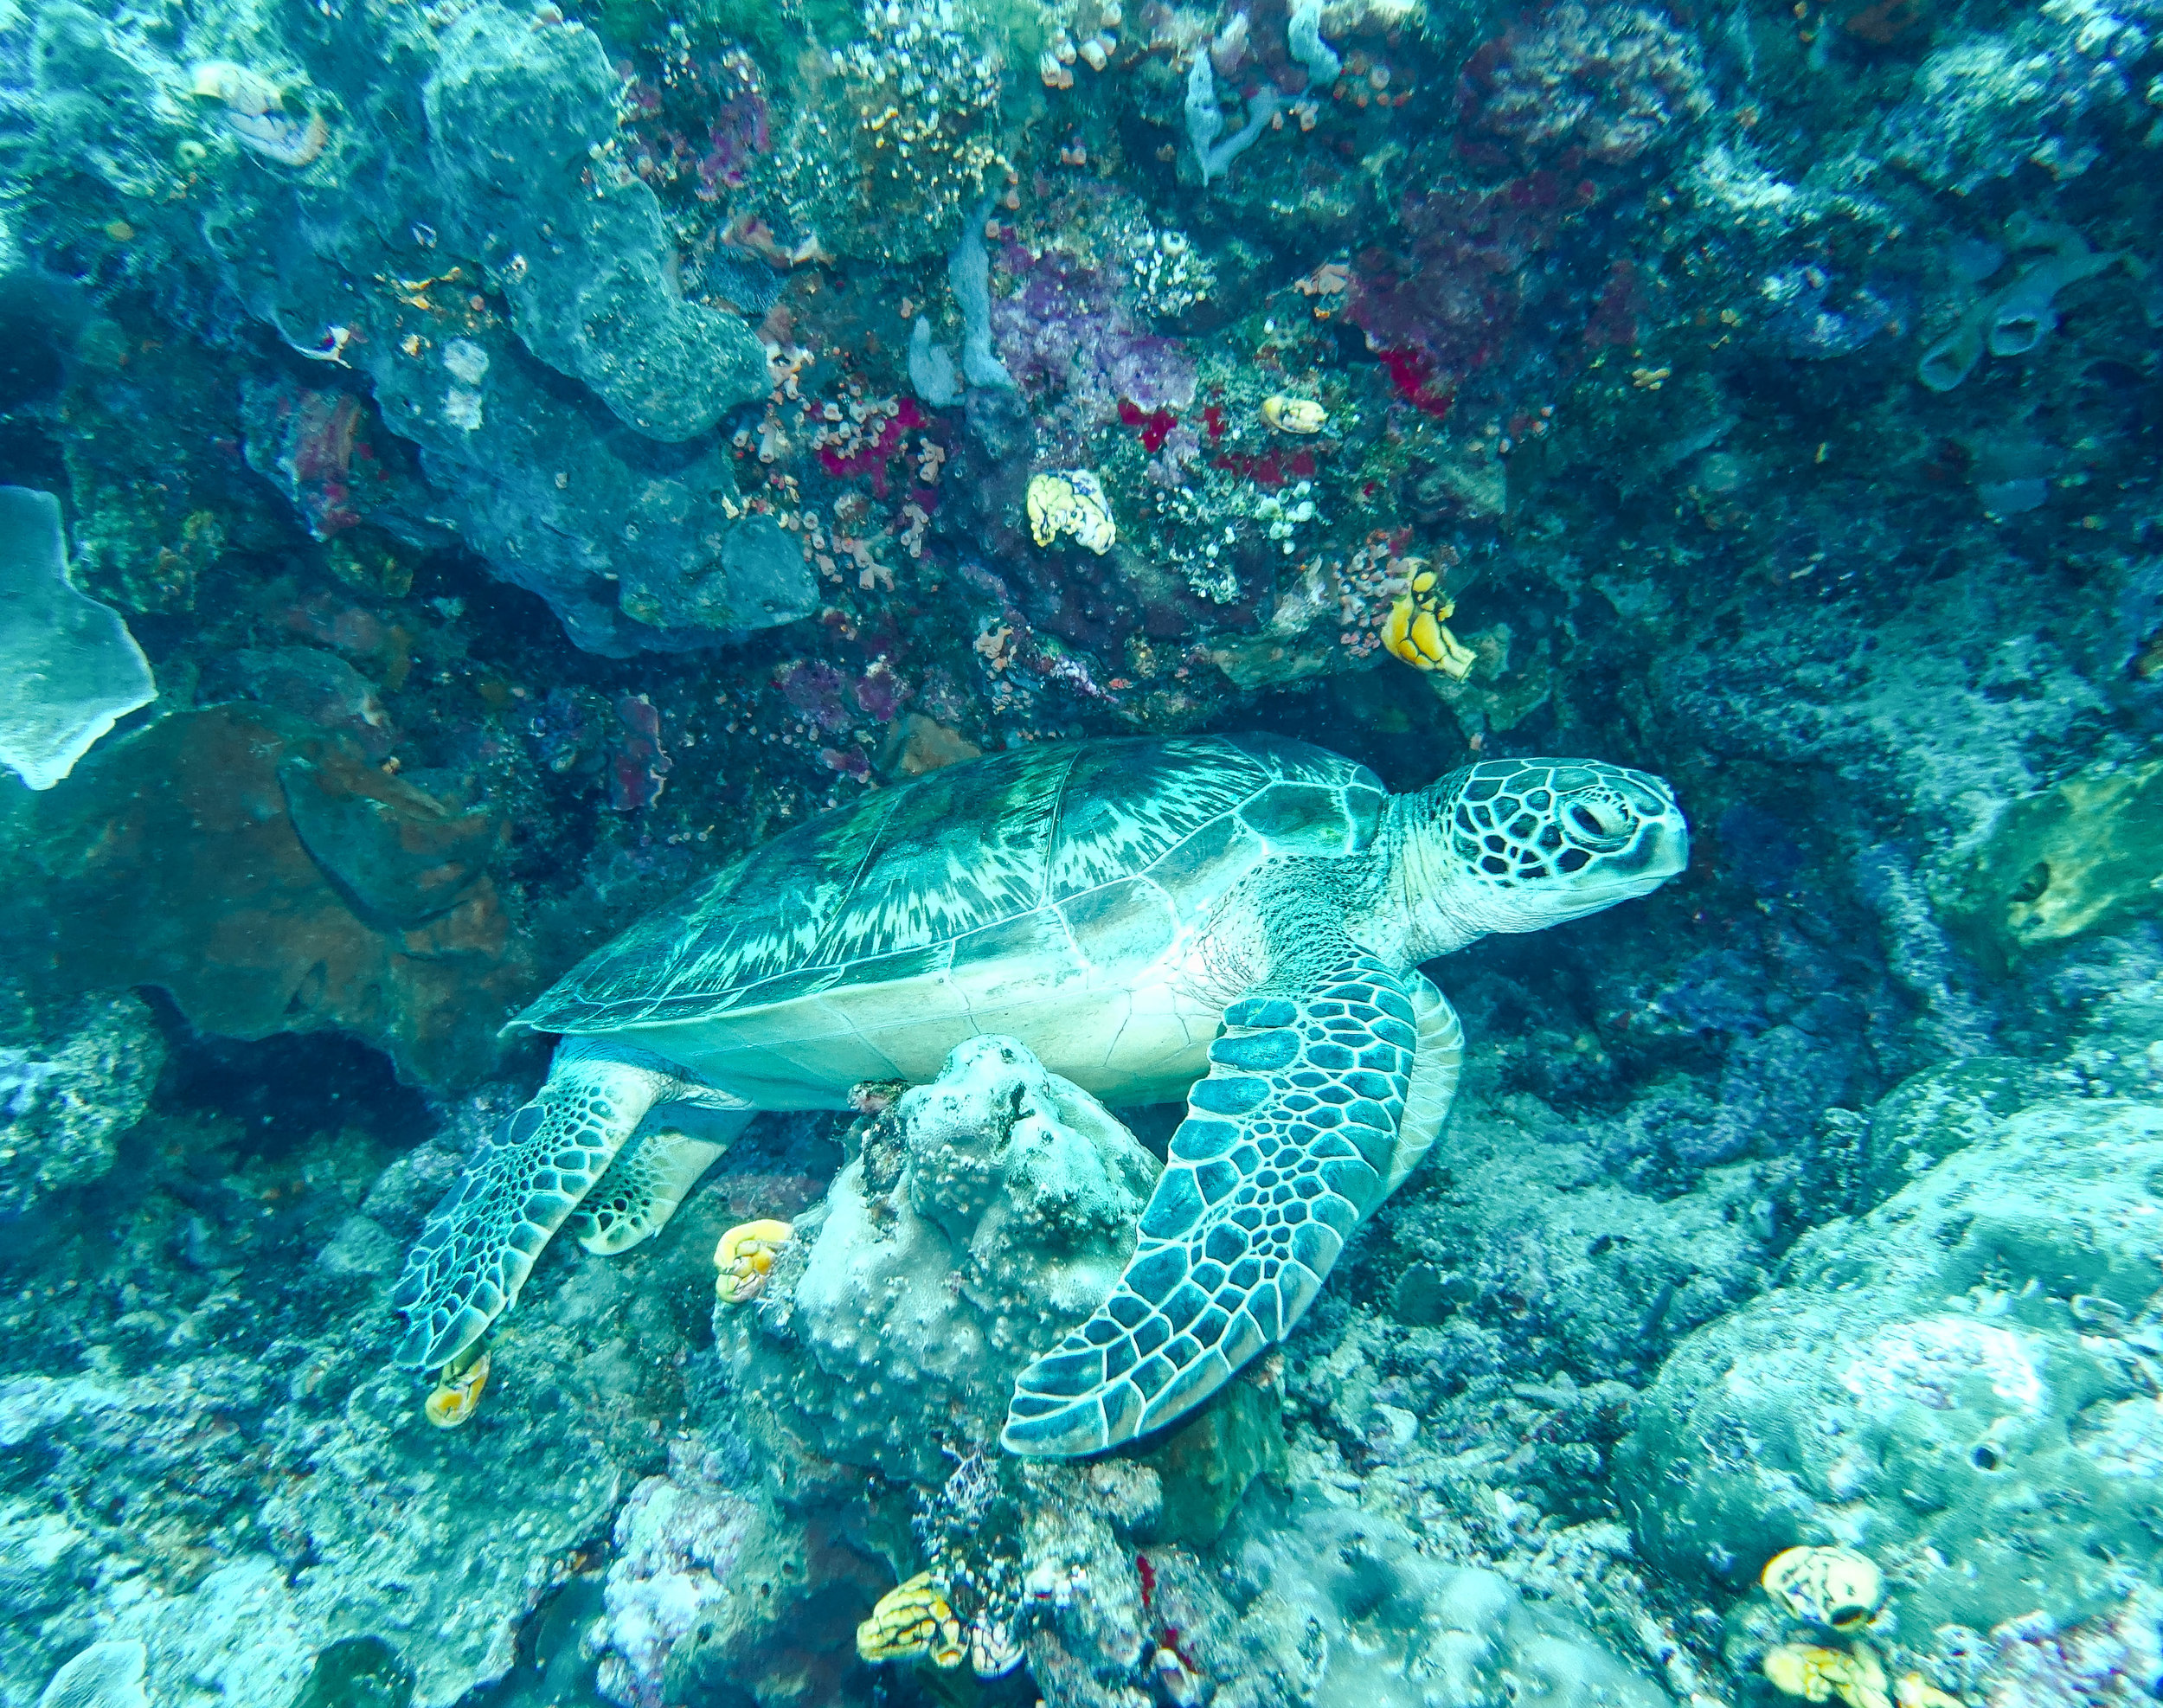 curio.trips.indonesia.diving.turtle.ledge.landscape-3.jpg